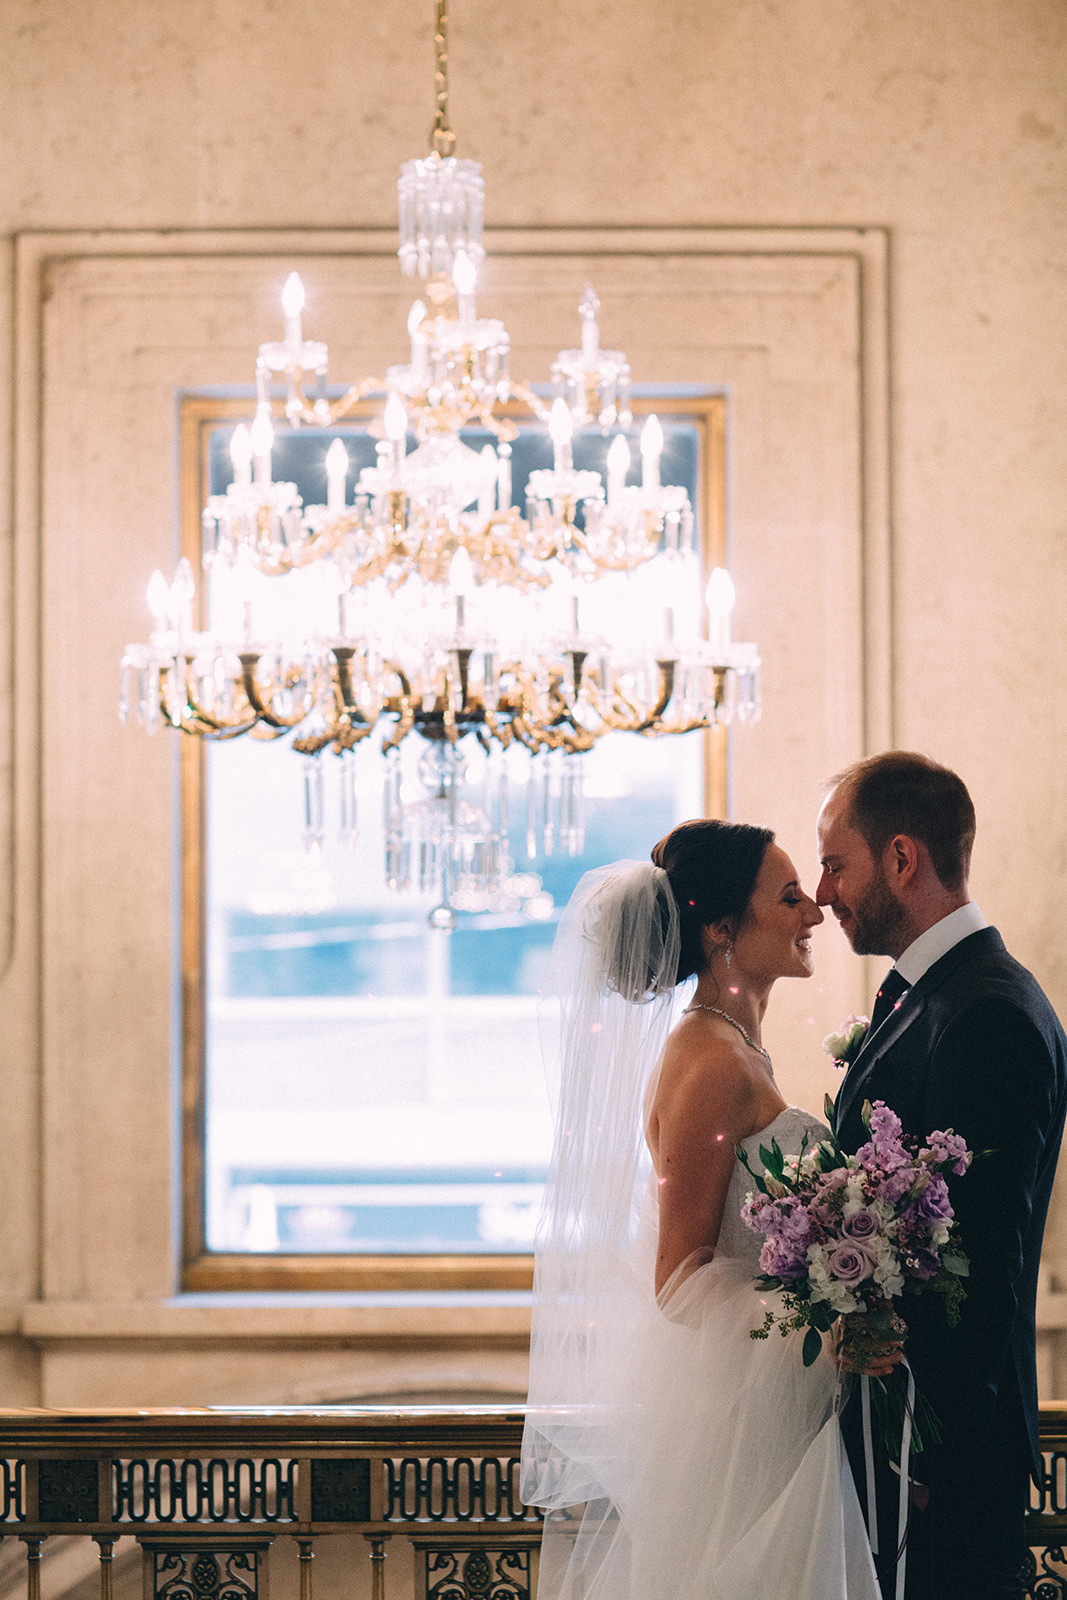 One-King-West-Toronto-wedding-photography_Sam-Wong-of-Visual-Cravings_KnR-12